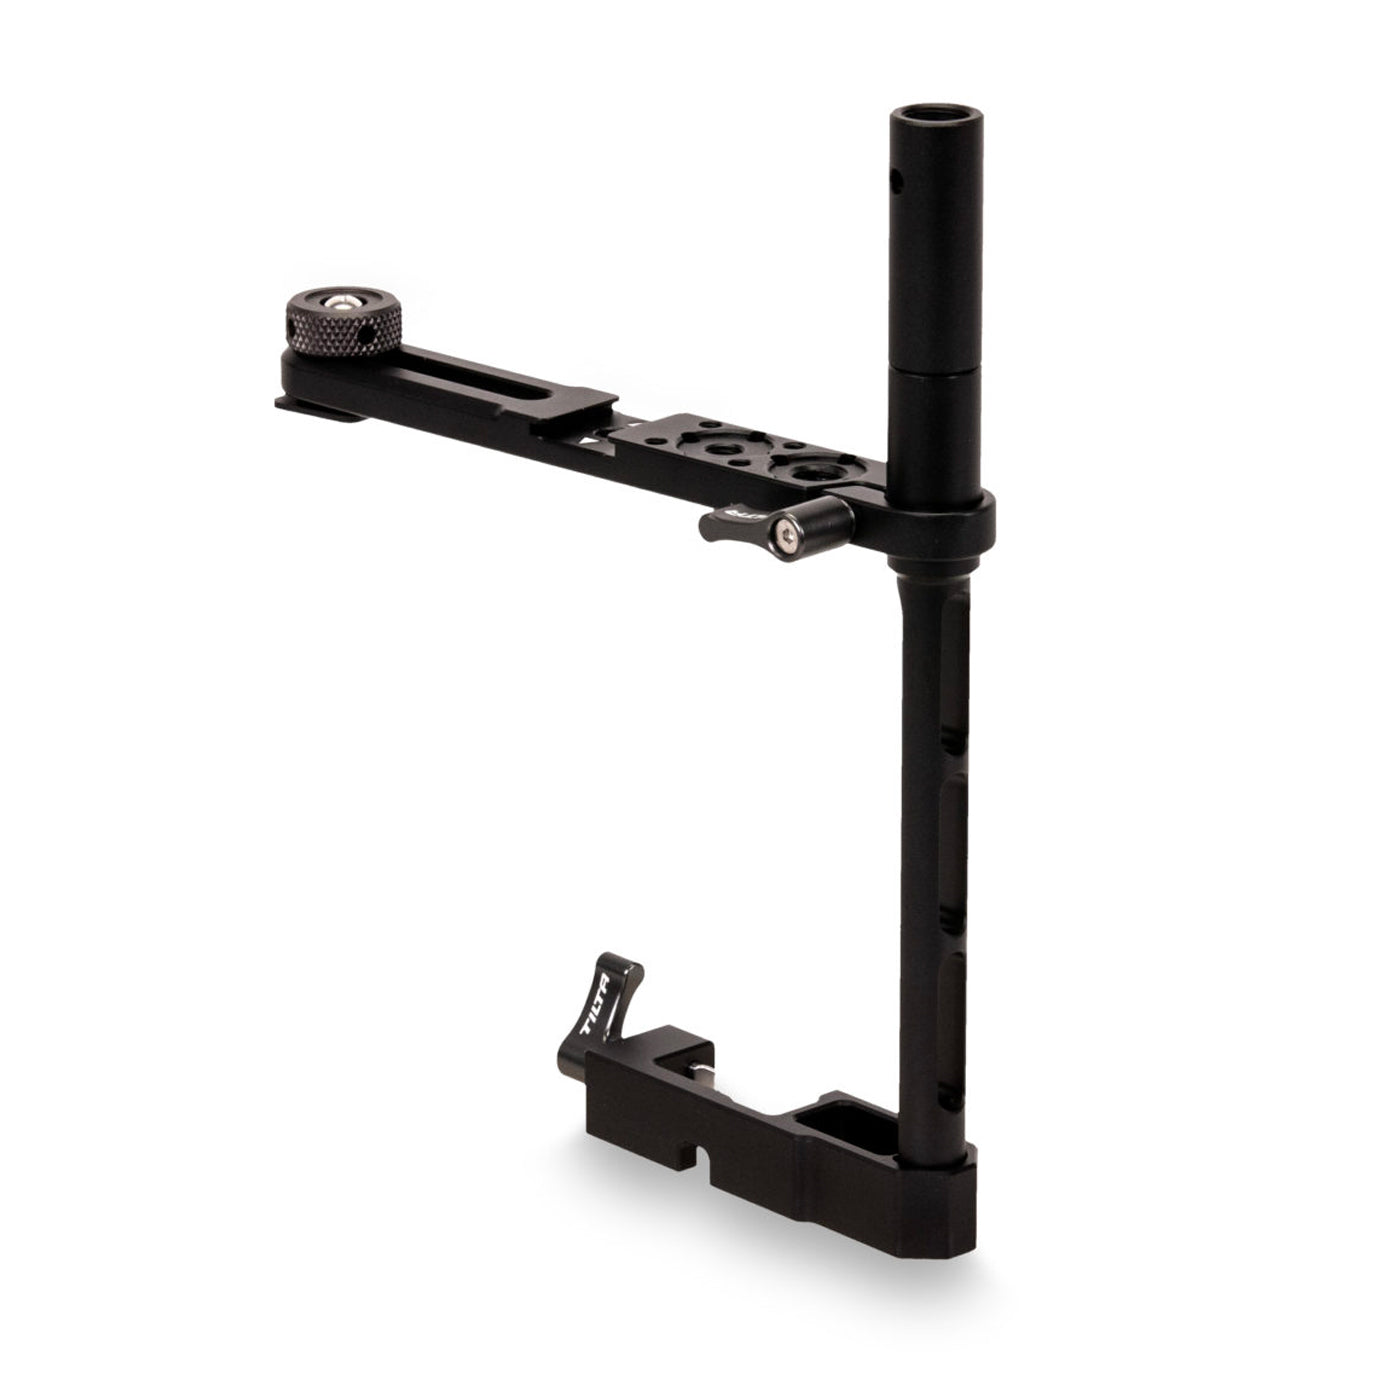 TILTA|Top Camera Support Bracket(for DJI RS2) - Viledge Online Store